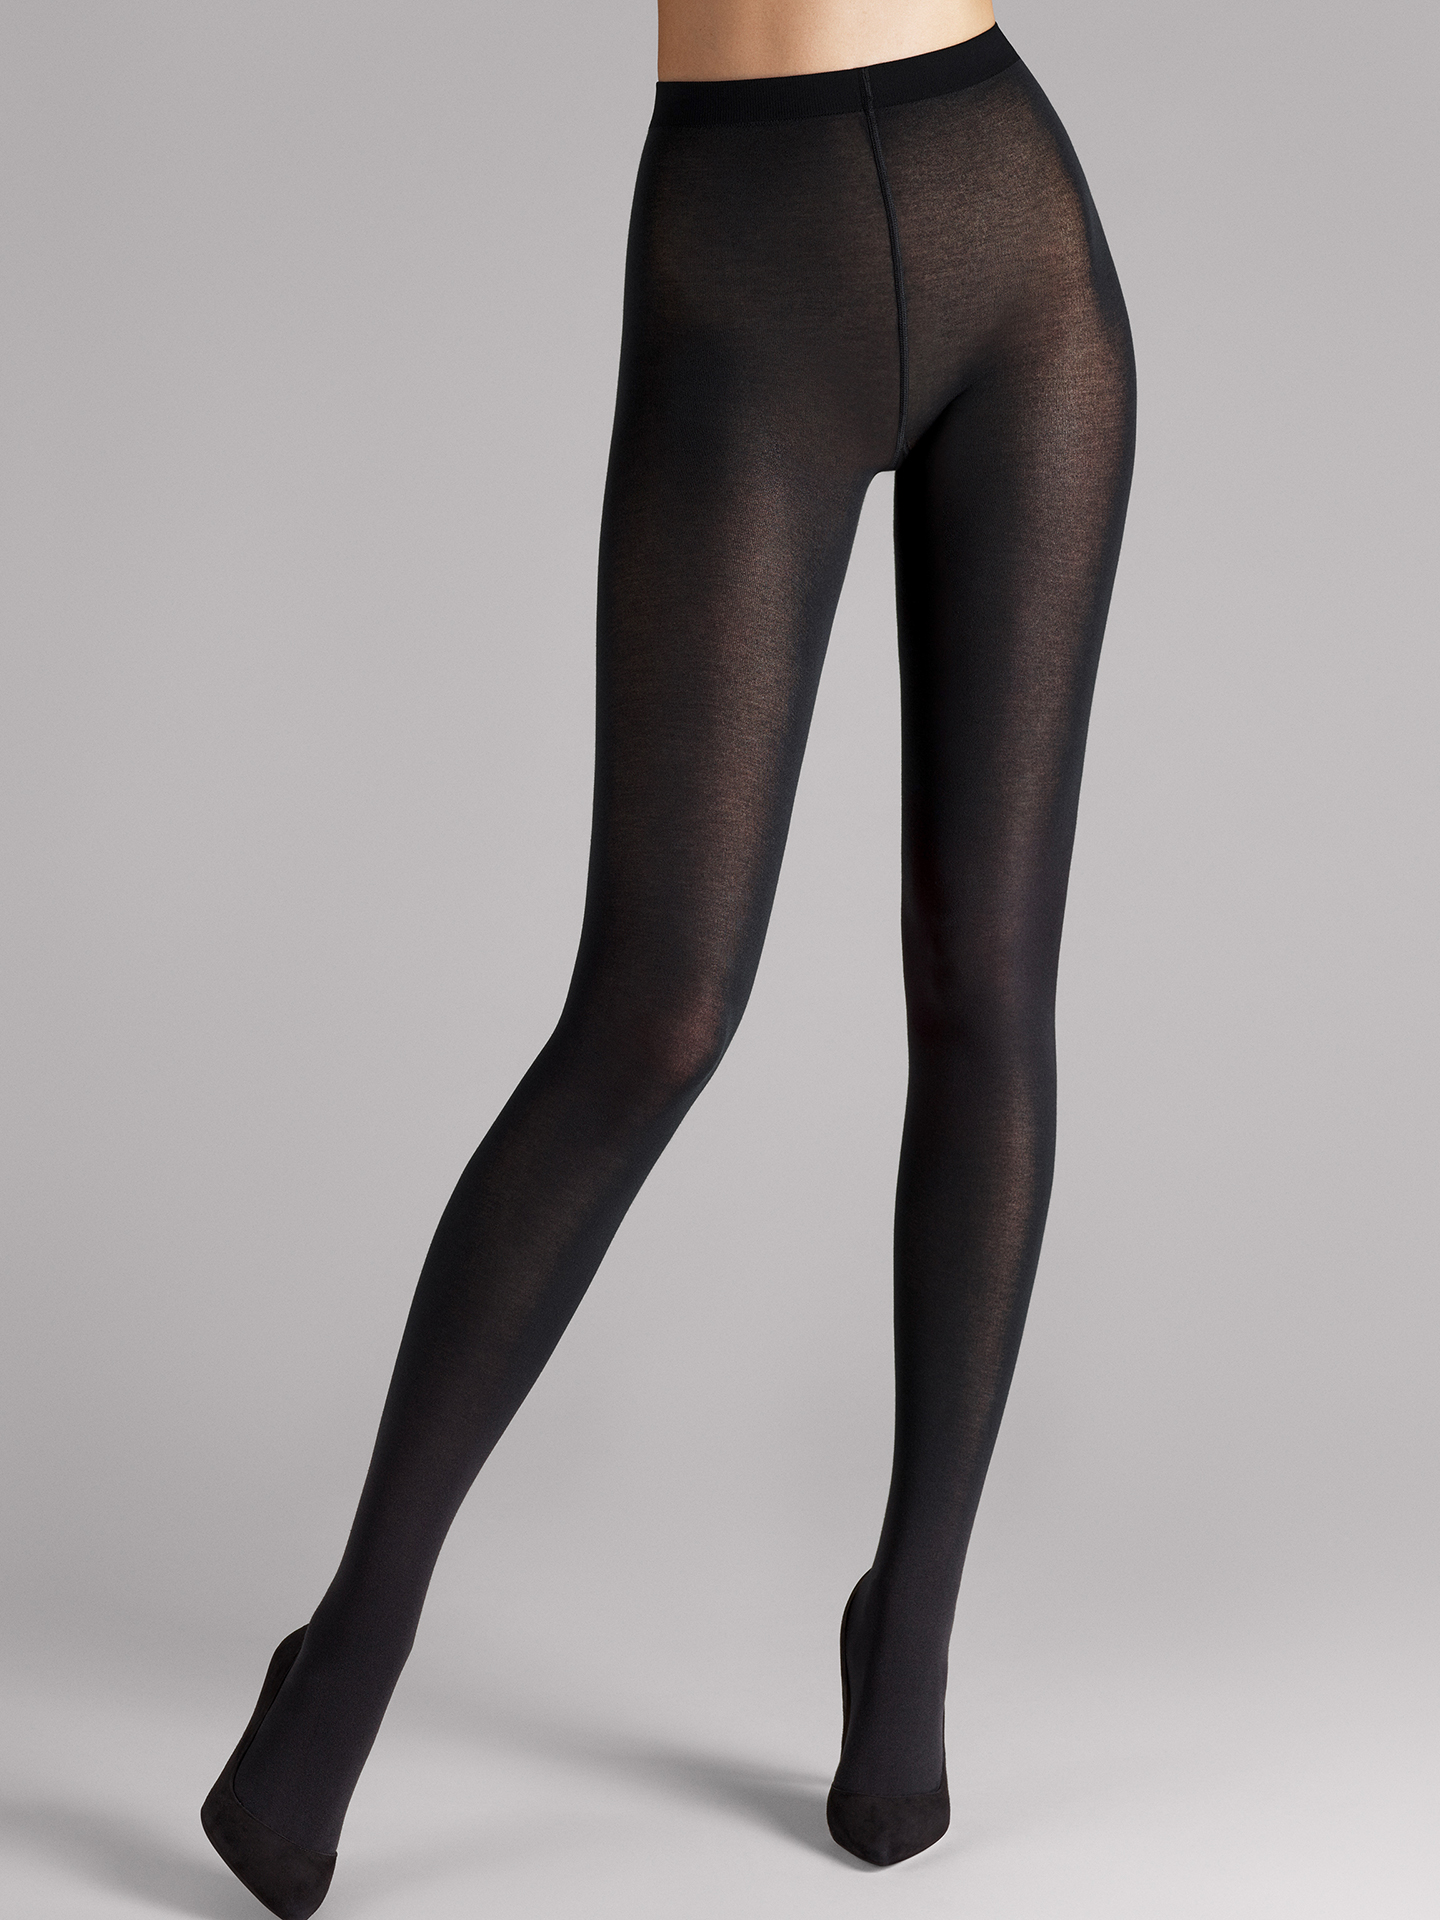 Wolford Apparel & Accessories > Clothing > Collant Cotton Velvet - 7005 - S